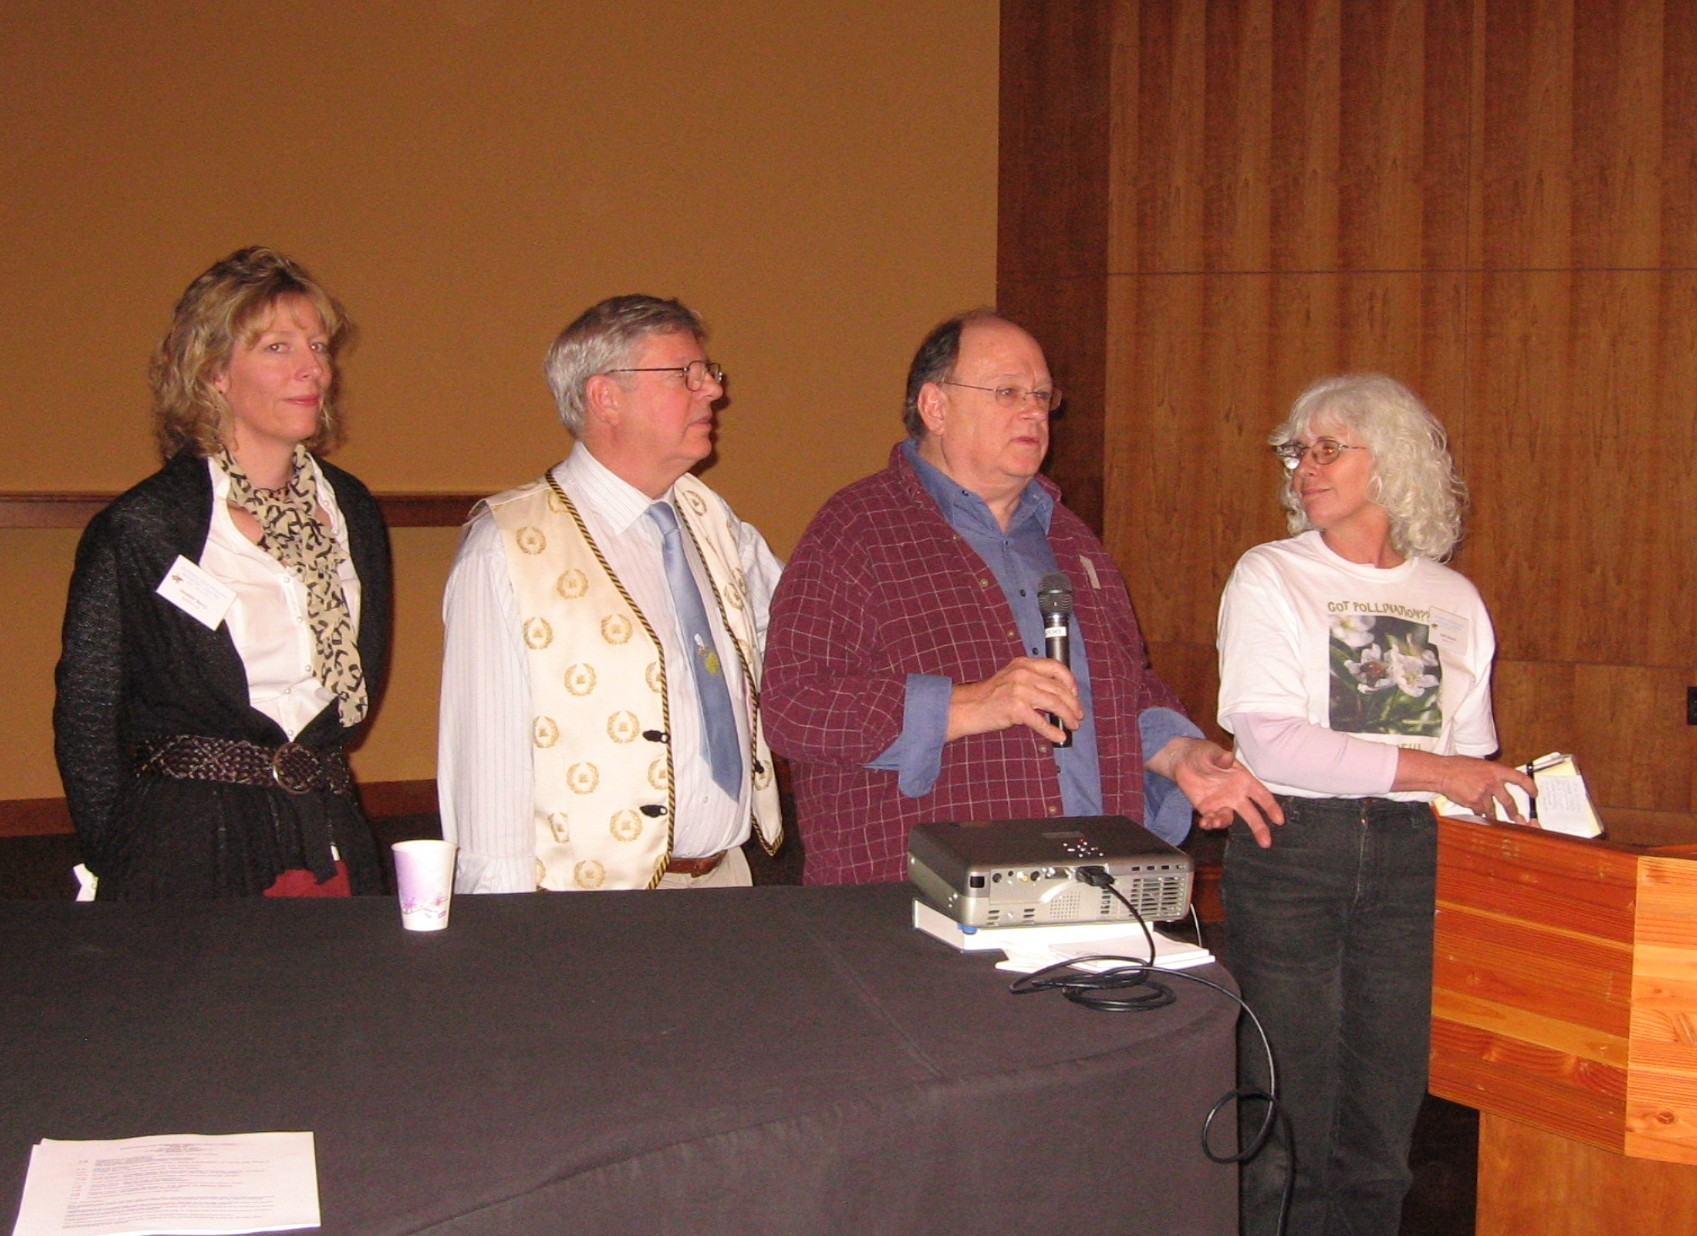 2007 SNEBA Conference with Dr's Larry Conner, Dewey Caron and Jen Berry